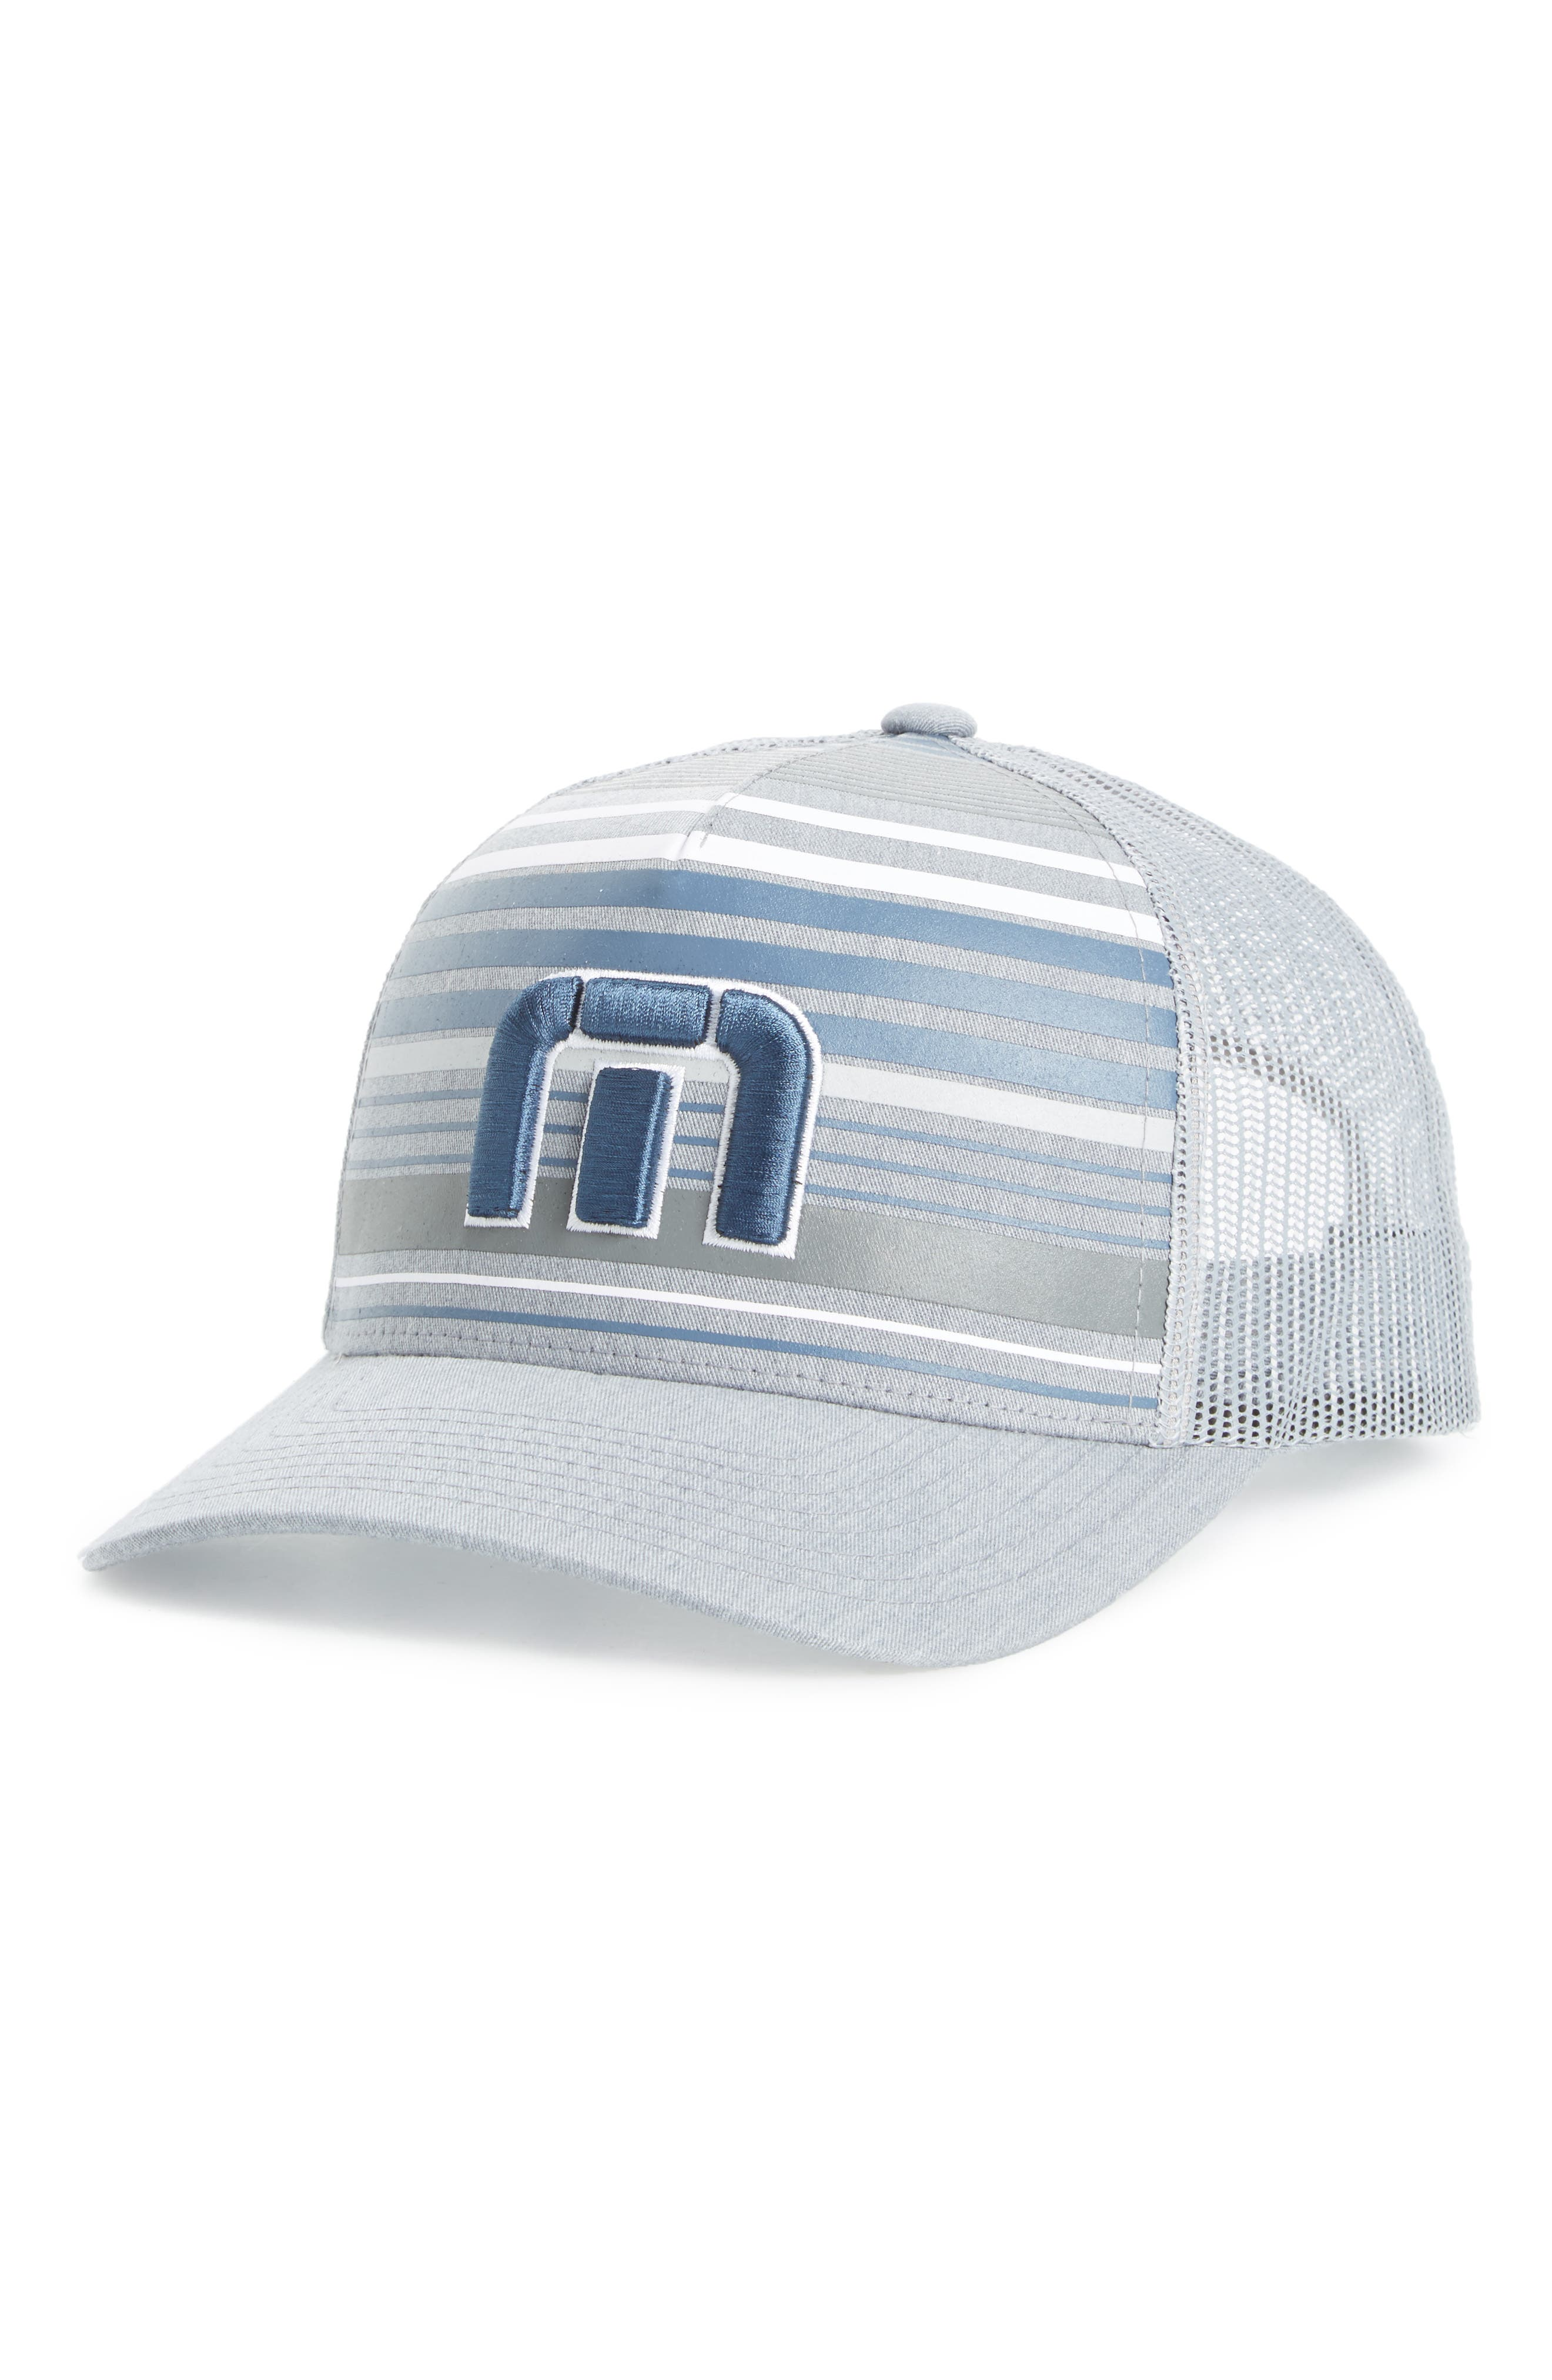 Travis Mathew Kubiak Snapback Trucker Hat